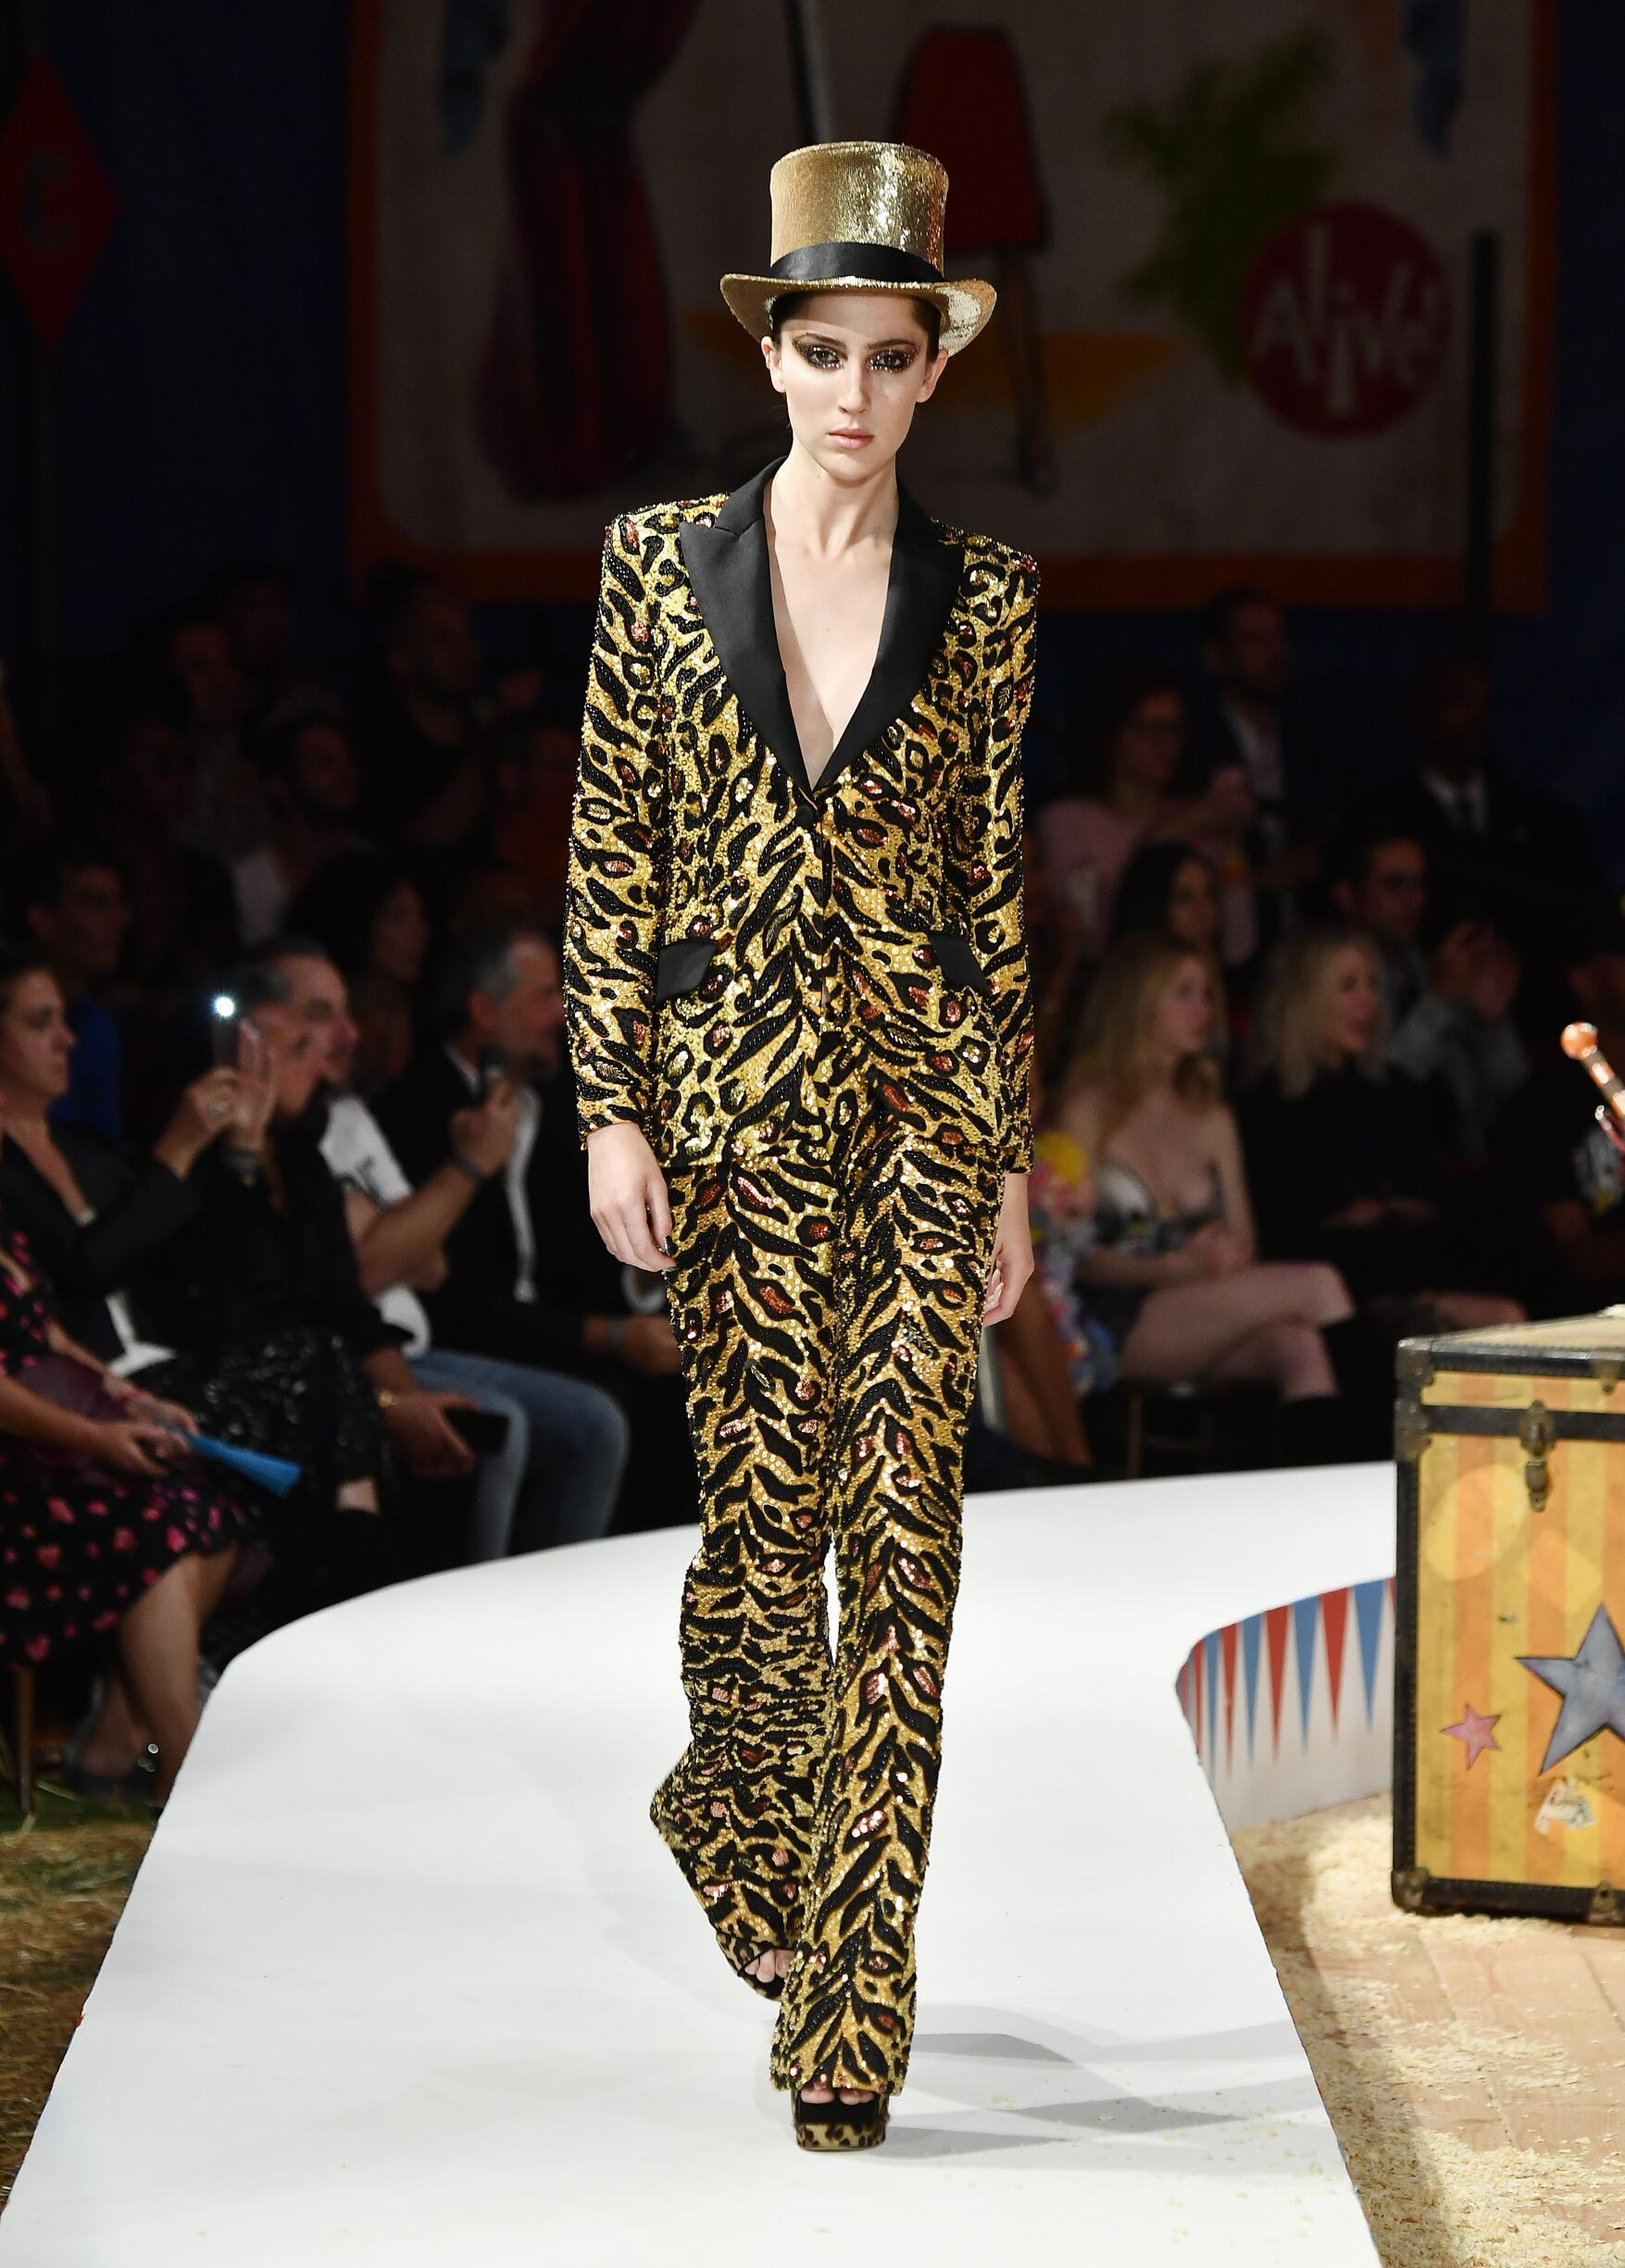 Moschino Spring Summer 2019 Menswear and Women's Resort Collection Look 54 Los Angeles